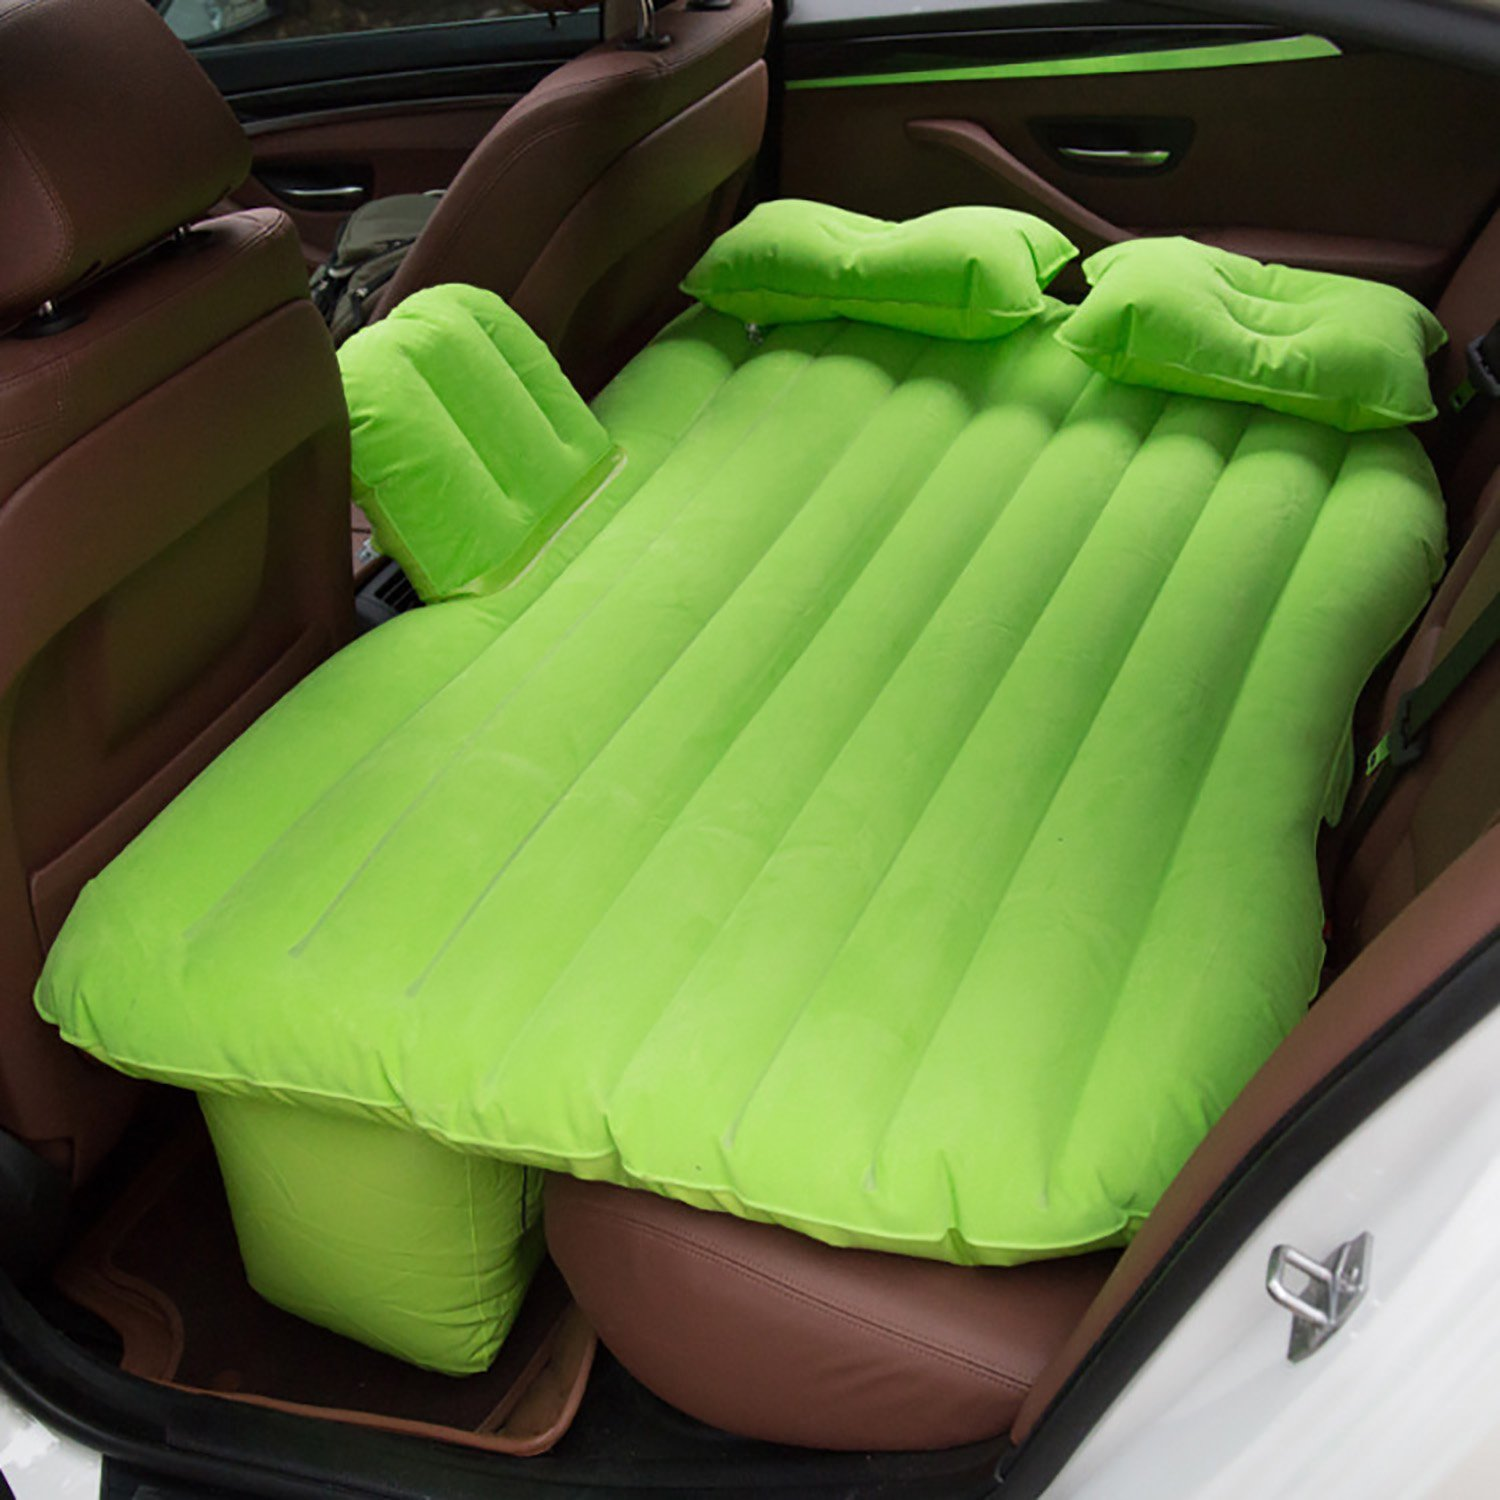 TooCust Car Mattress Travel Camping Air Bed Back Seat Air Mattress Universal SUV Air Couch with 2 Air Pillows,Green